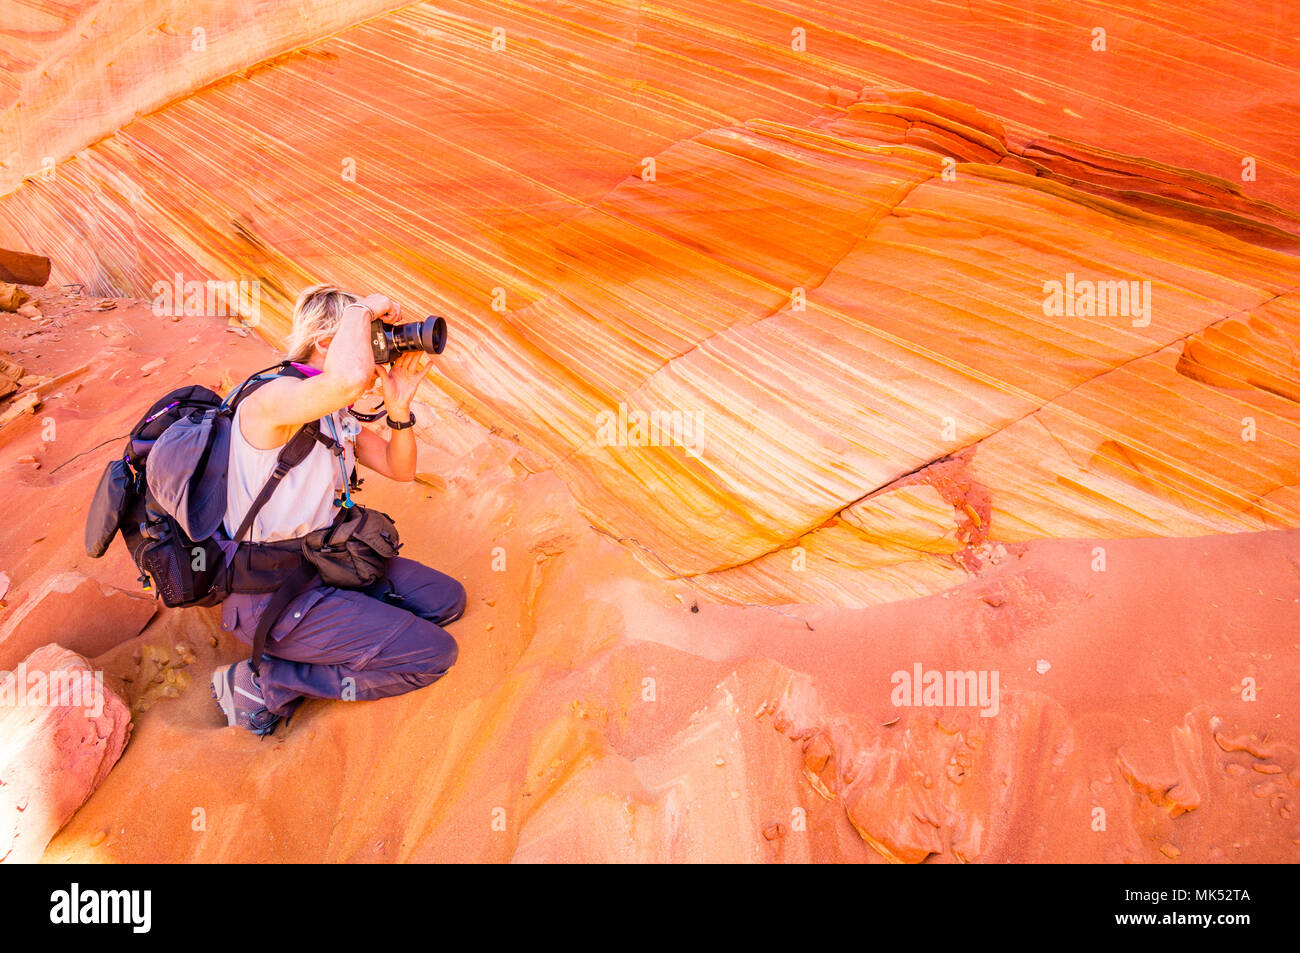 Female photographer with day pack surrounded by red and gold striped sandstone South Coyote Buttes Vermilion Cliffs National Monument, Arizona. - Stock Image